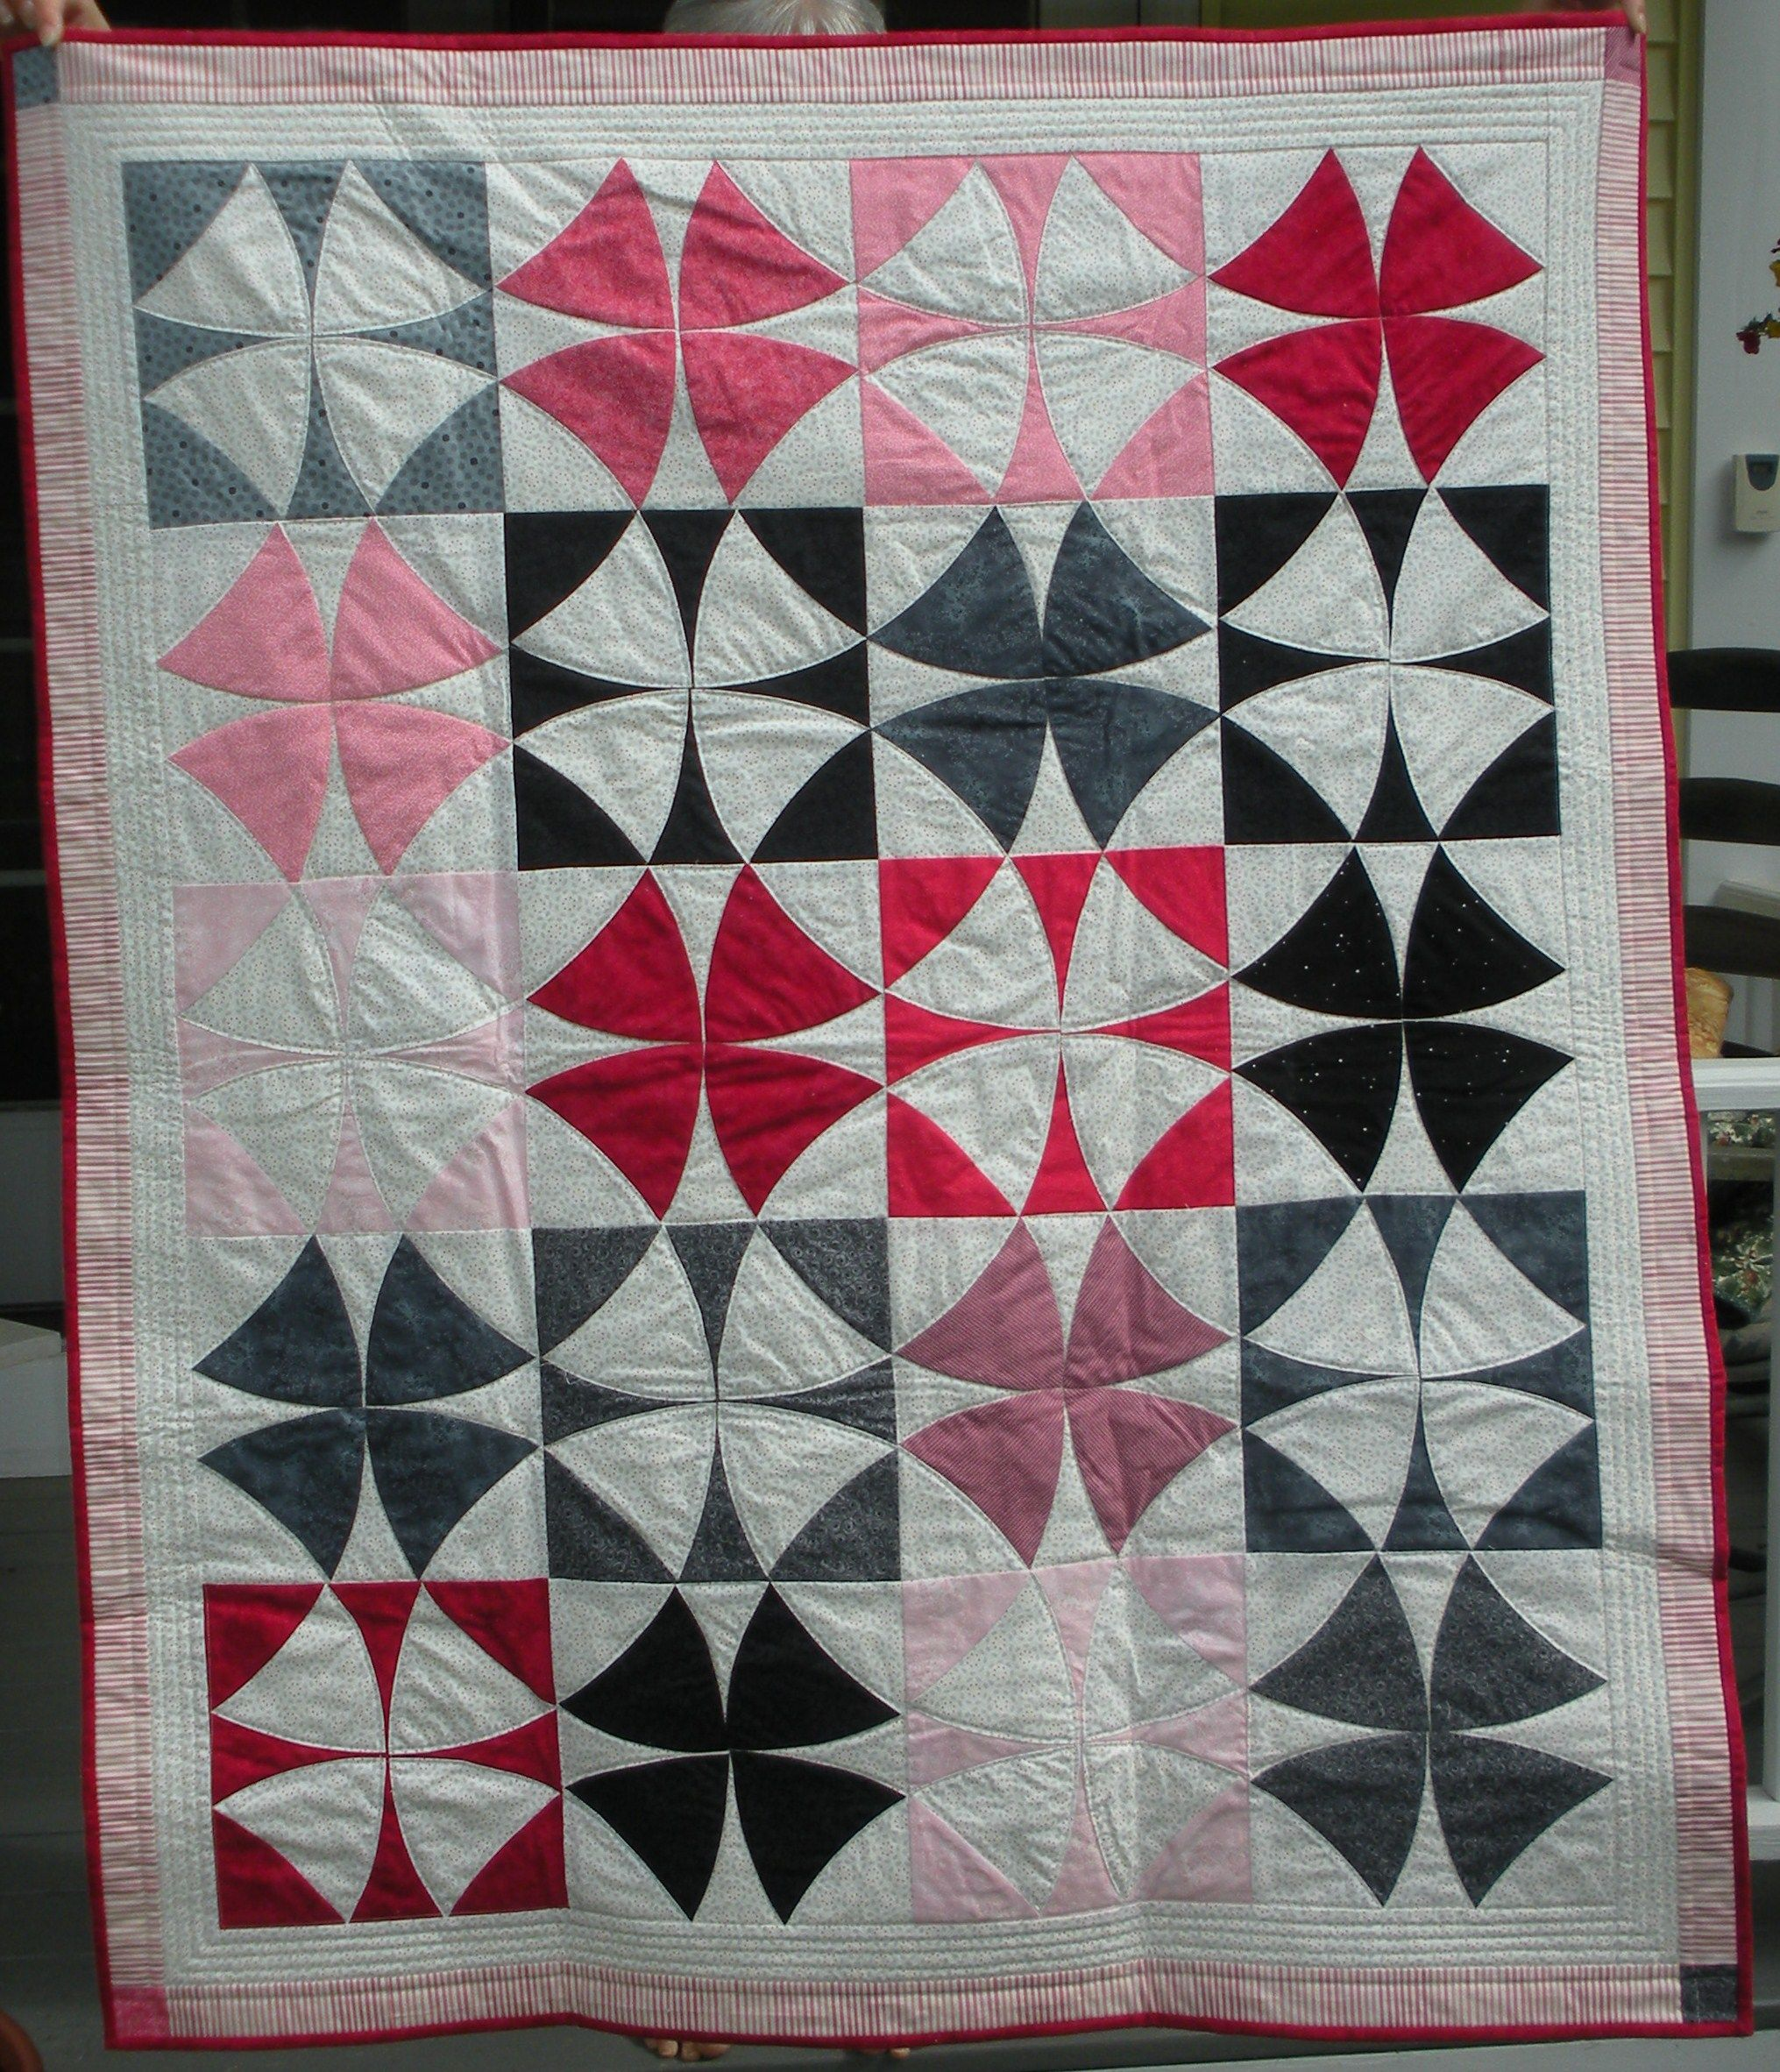 winding ways quilt - Google Search | quilts | Pinterest